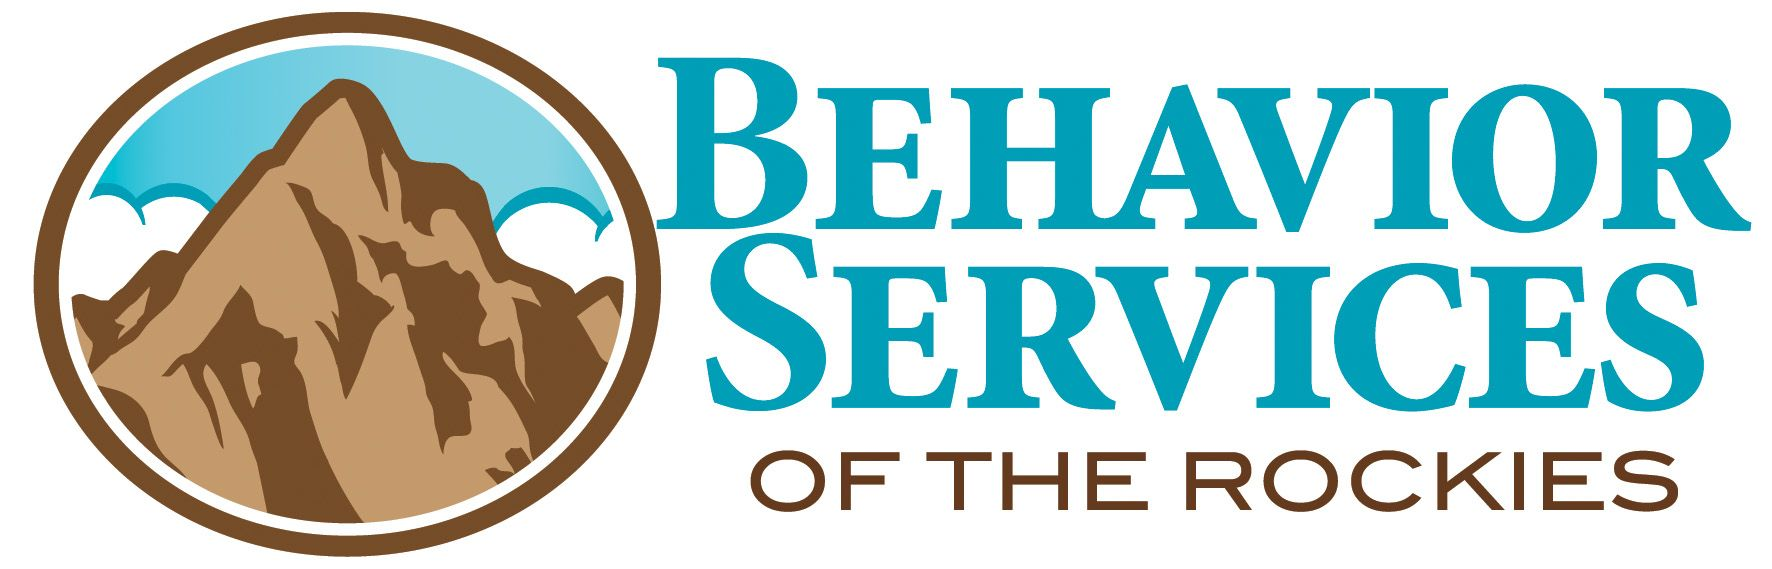 Behavior Services of the Rockies